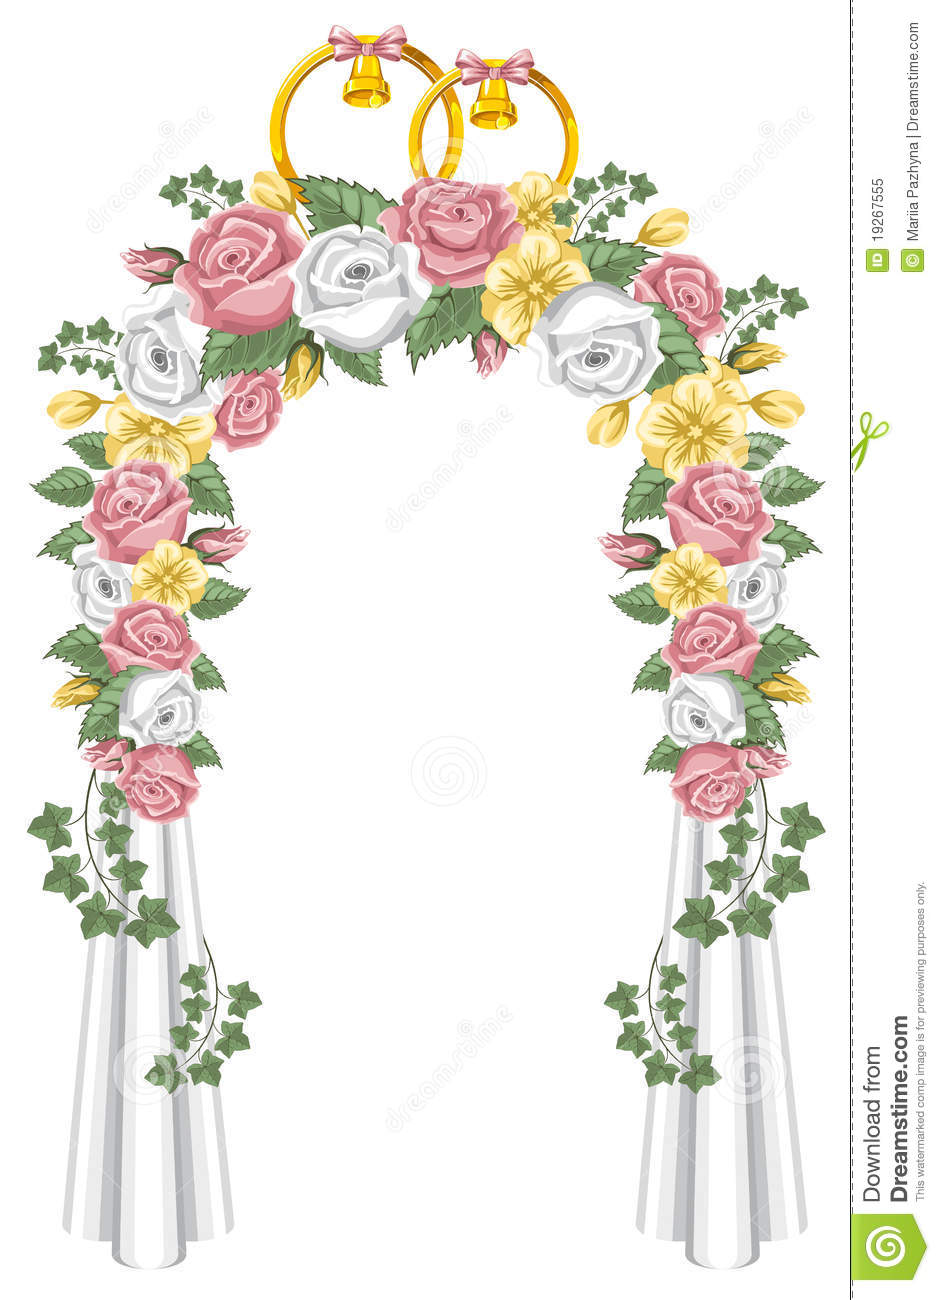 Wedding Arch Royalty Free Stock Photo - Image: 19267555